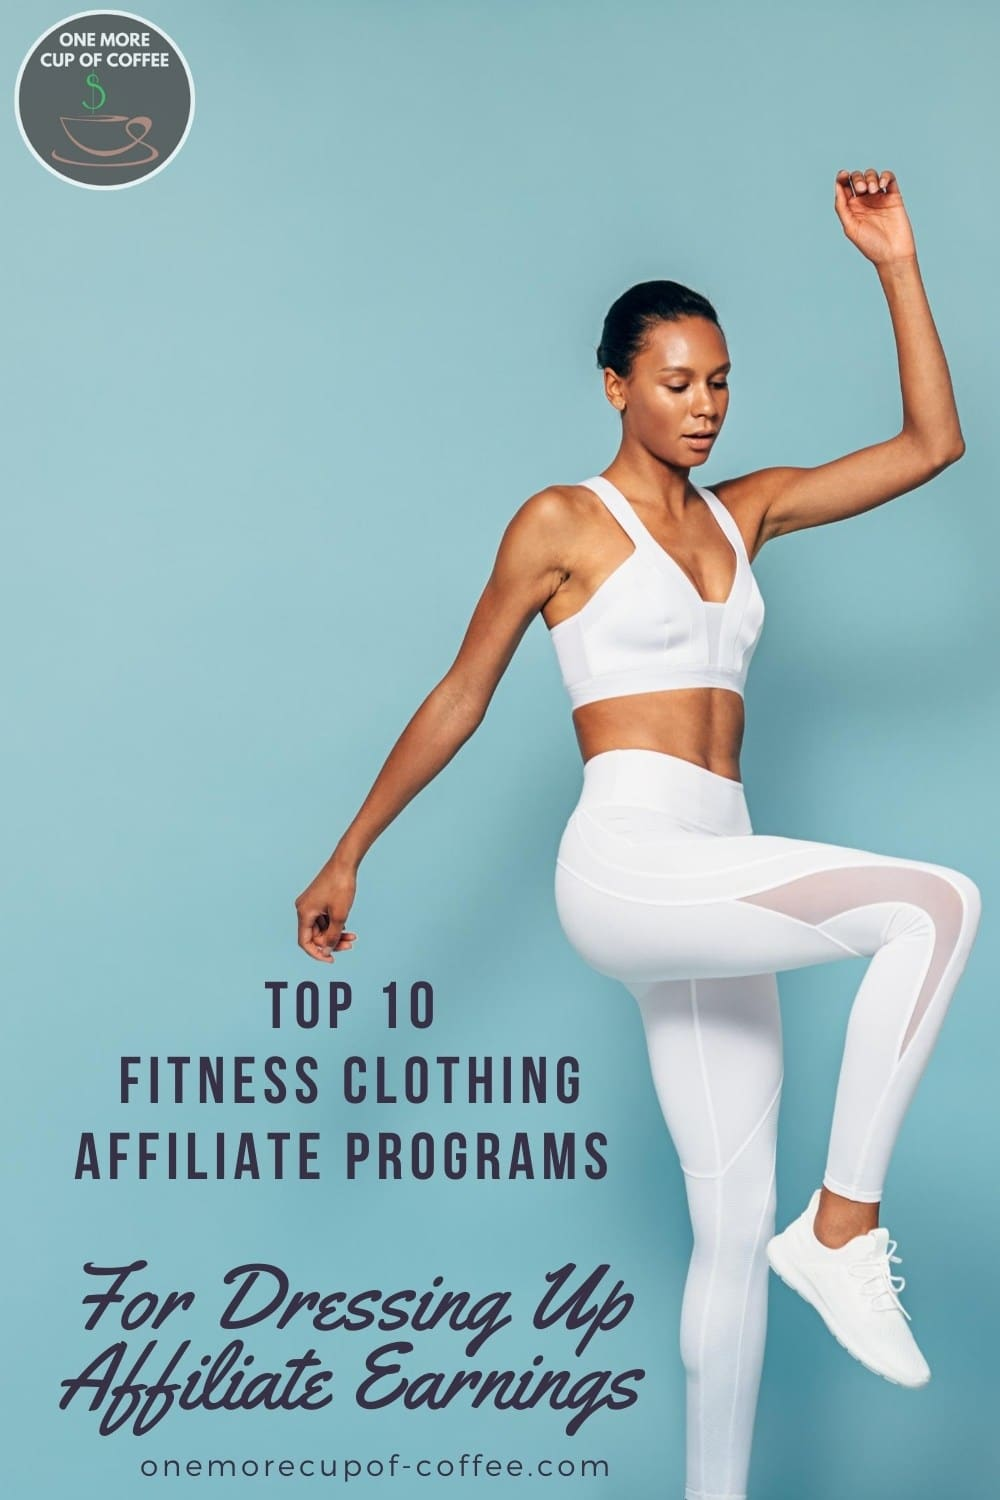 woman in white workout outfit in mid jump against a light blue background, with text overlay